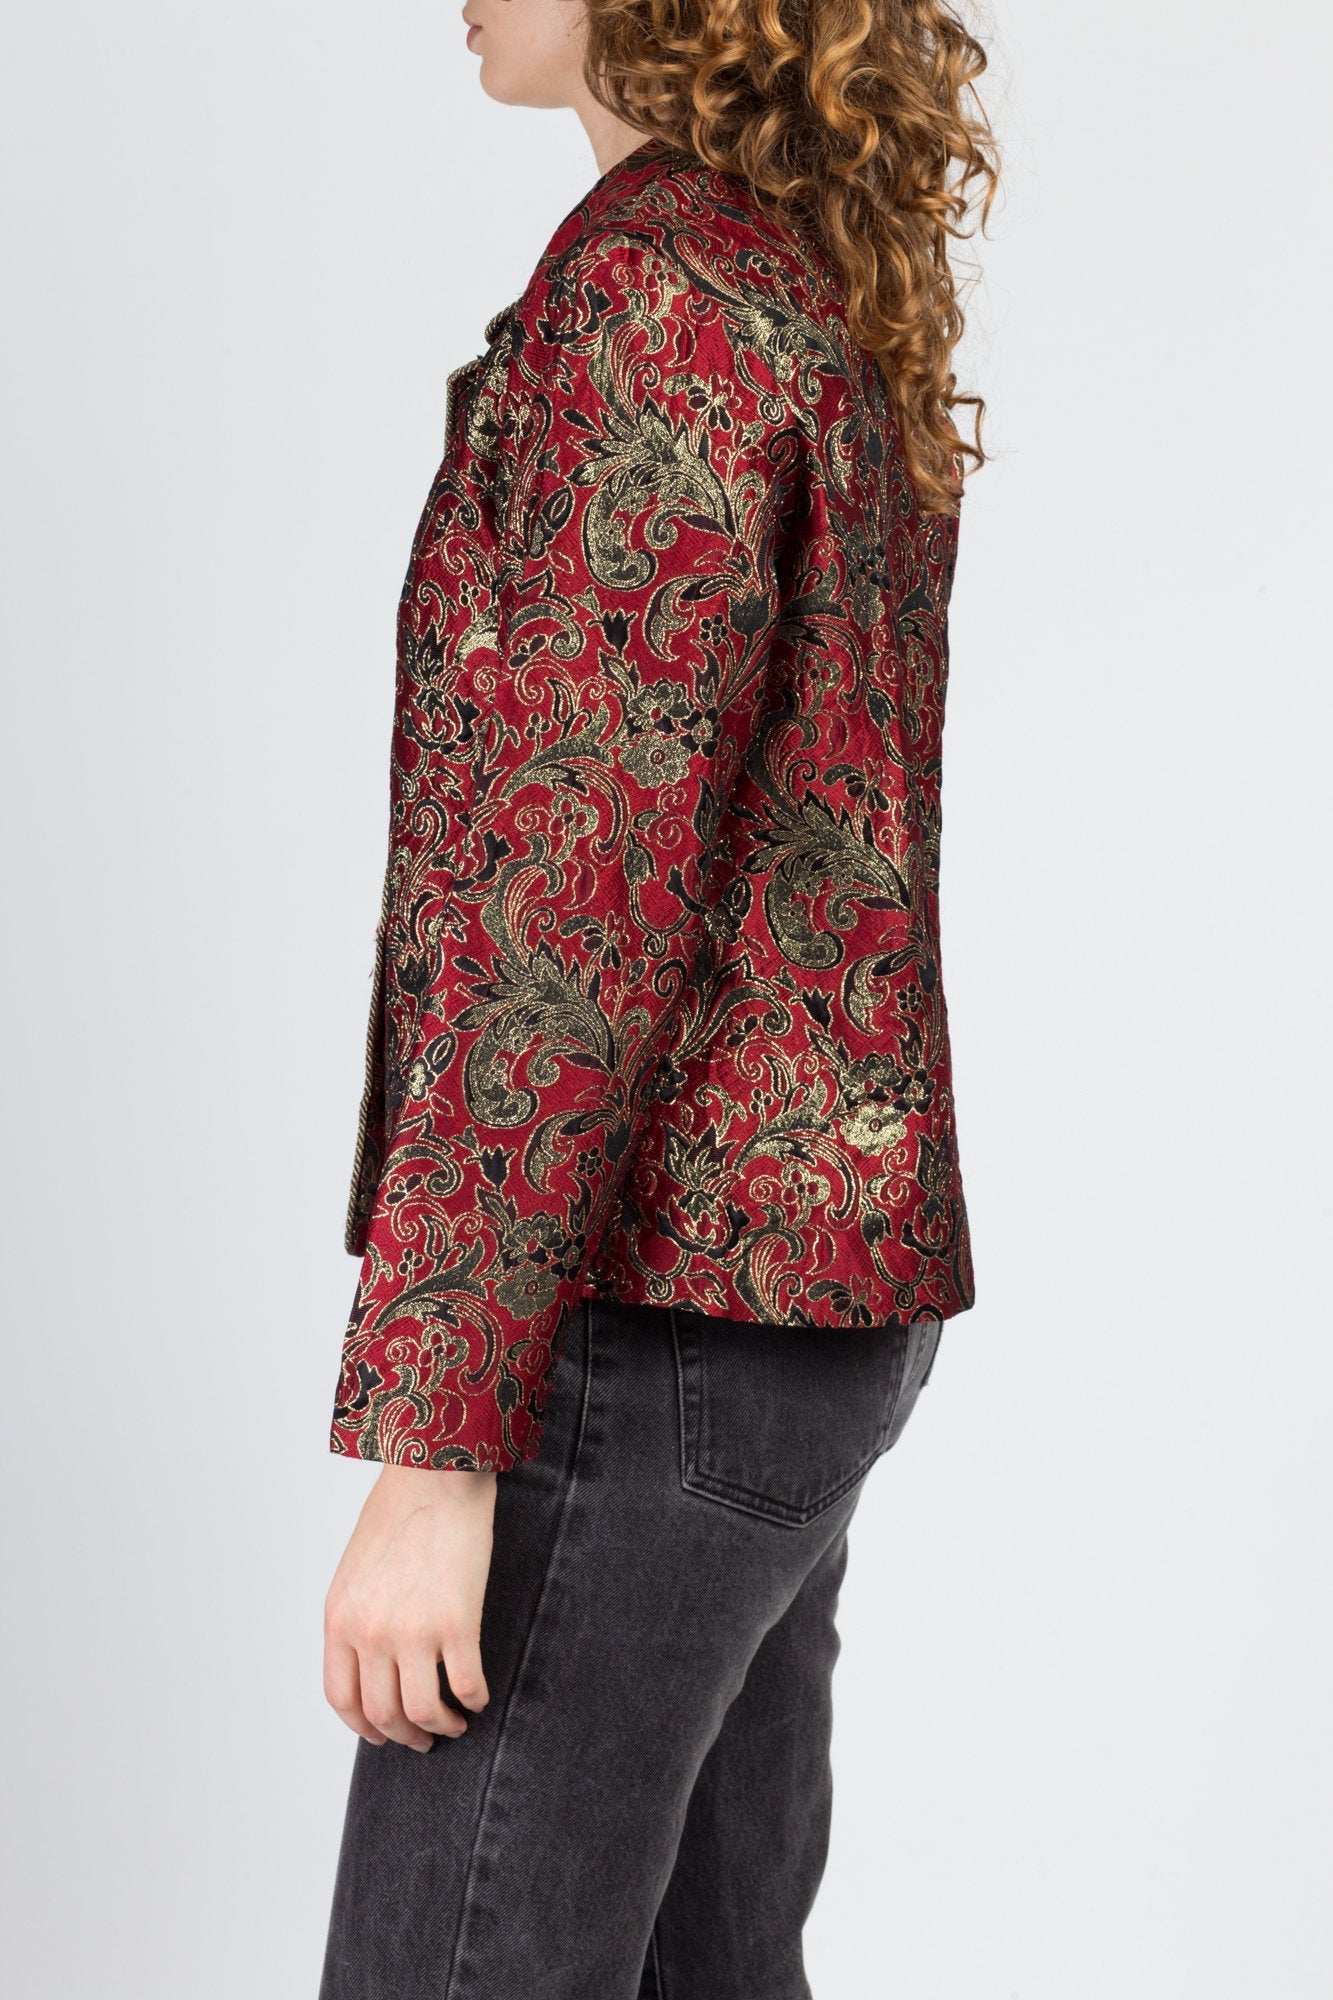 80s Metallic Brocade Jacket - Medium